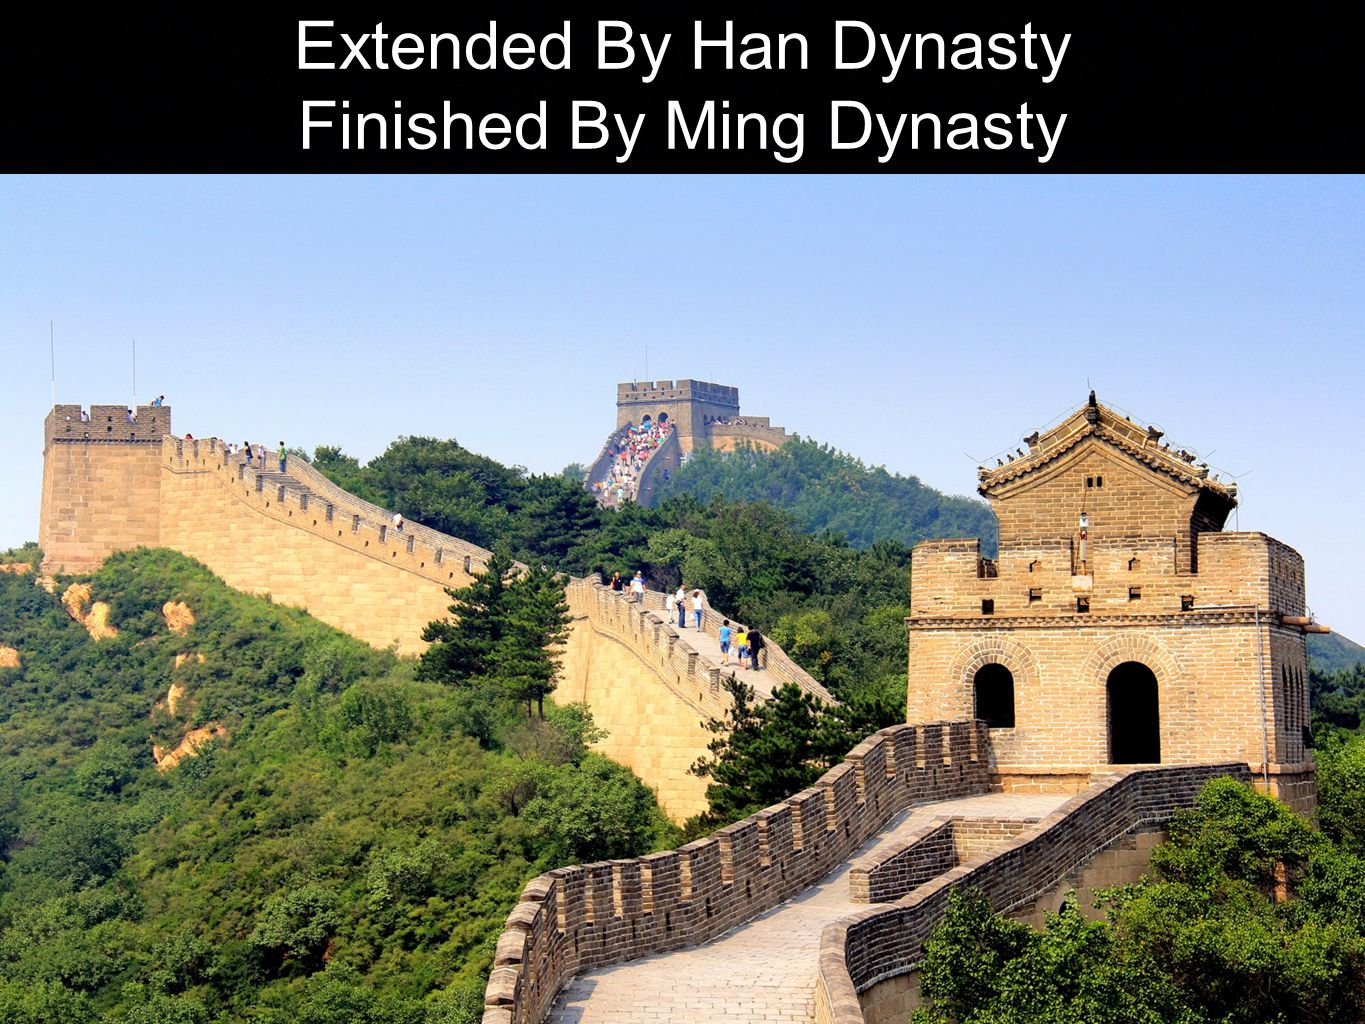 Extended By Han Dynasty Finished By Ming Dynasty